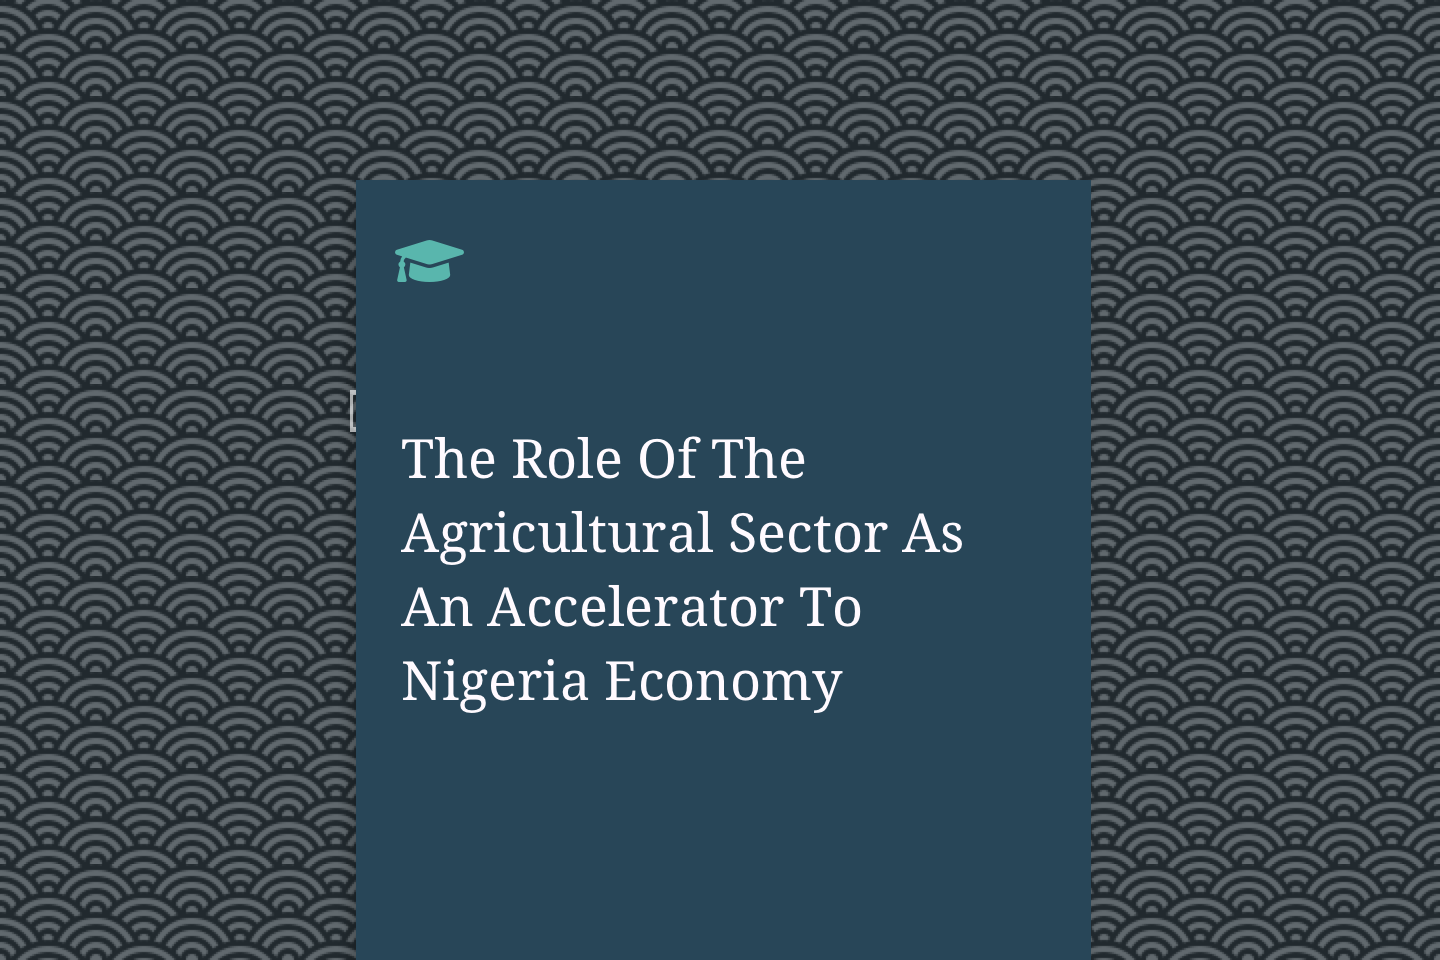 The Role Of The Agricultural Sector As An Accelerator To Nigeria Economy